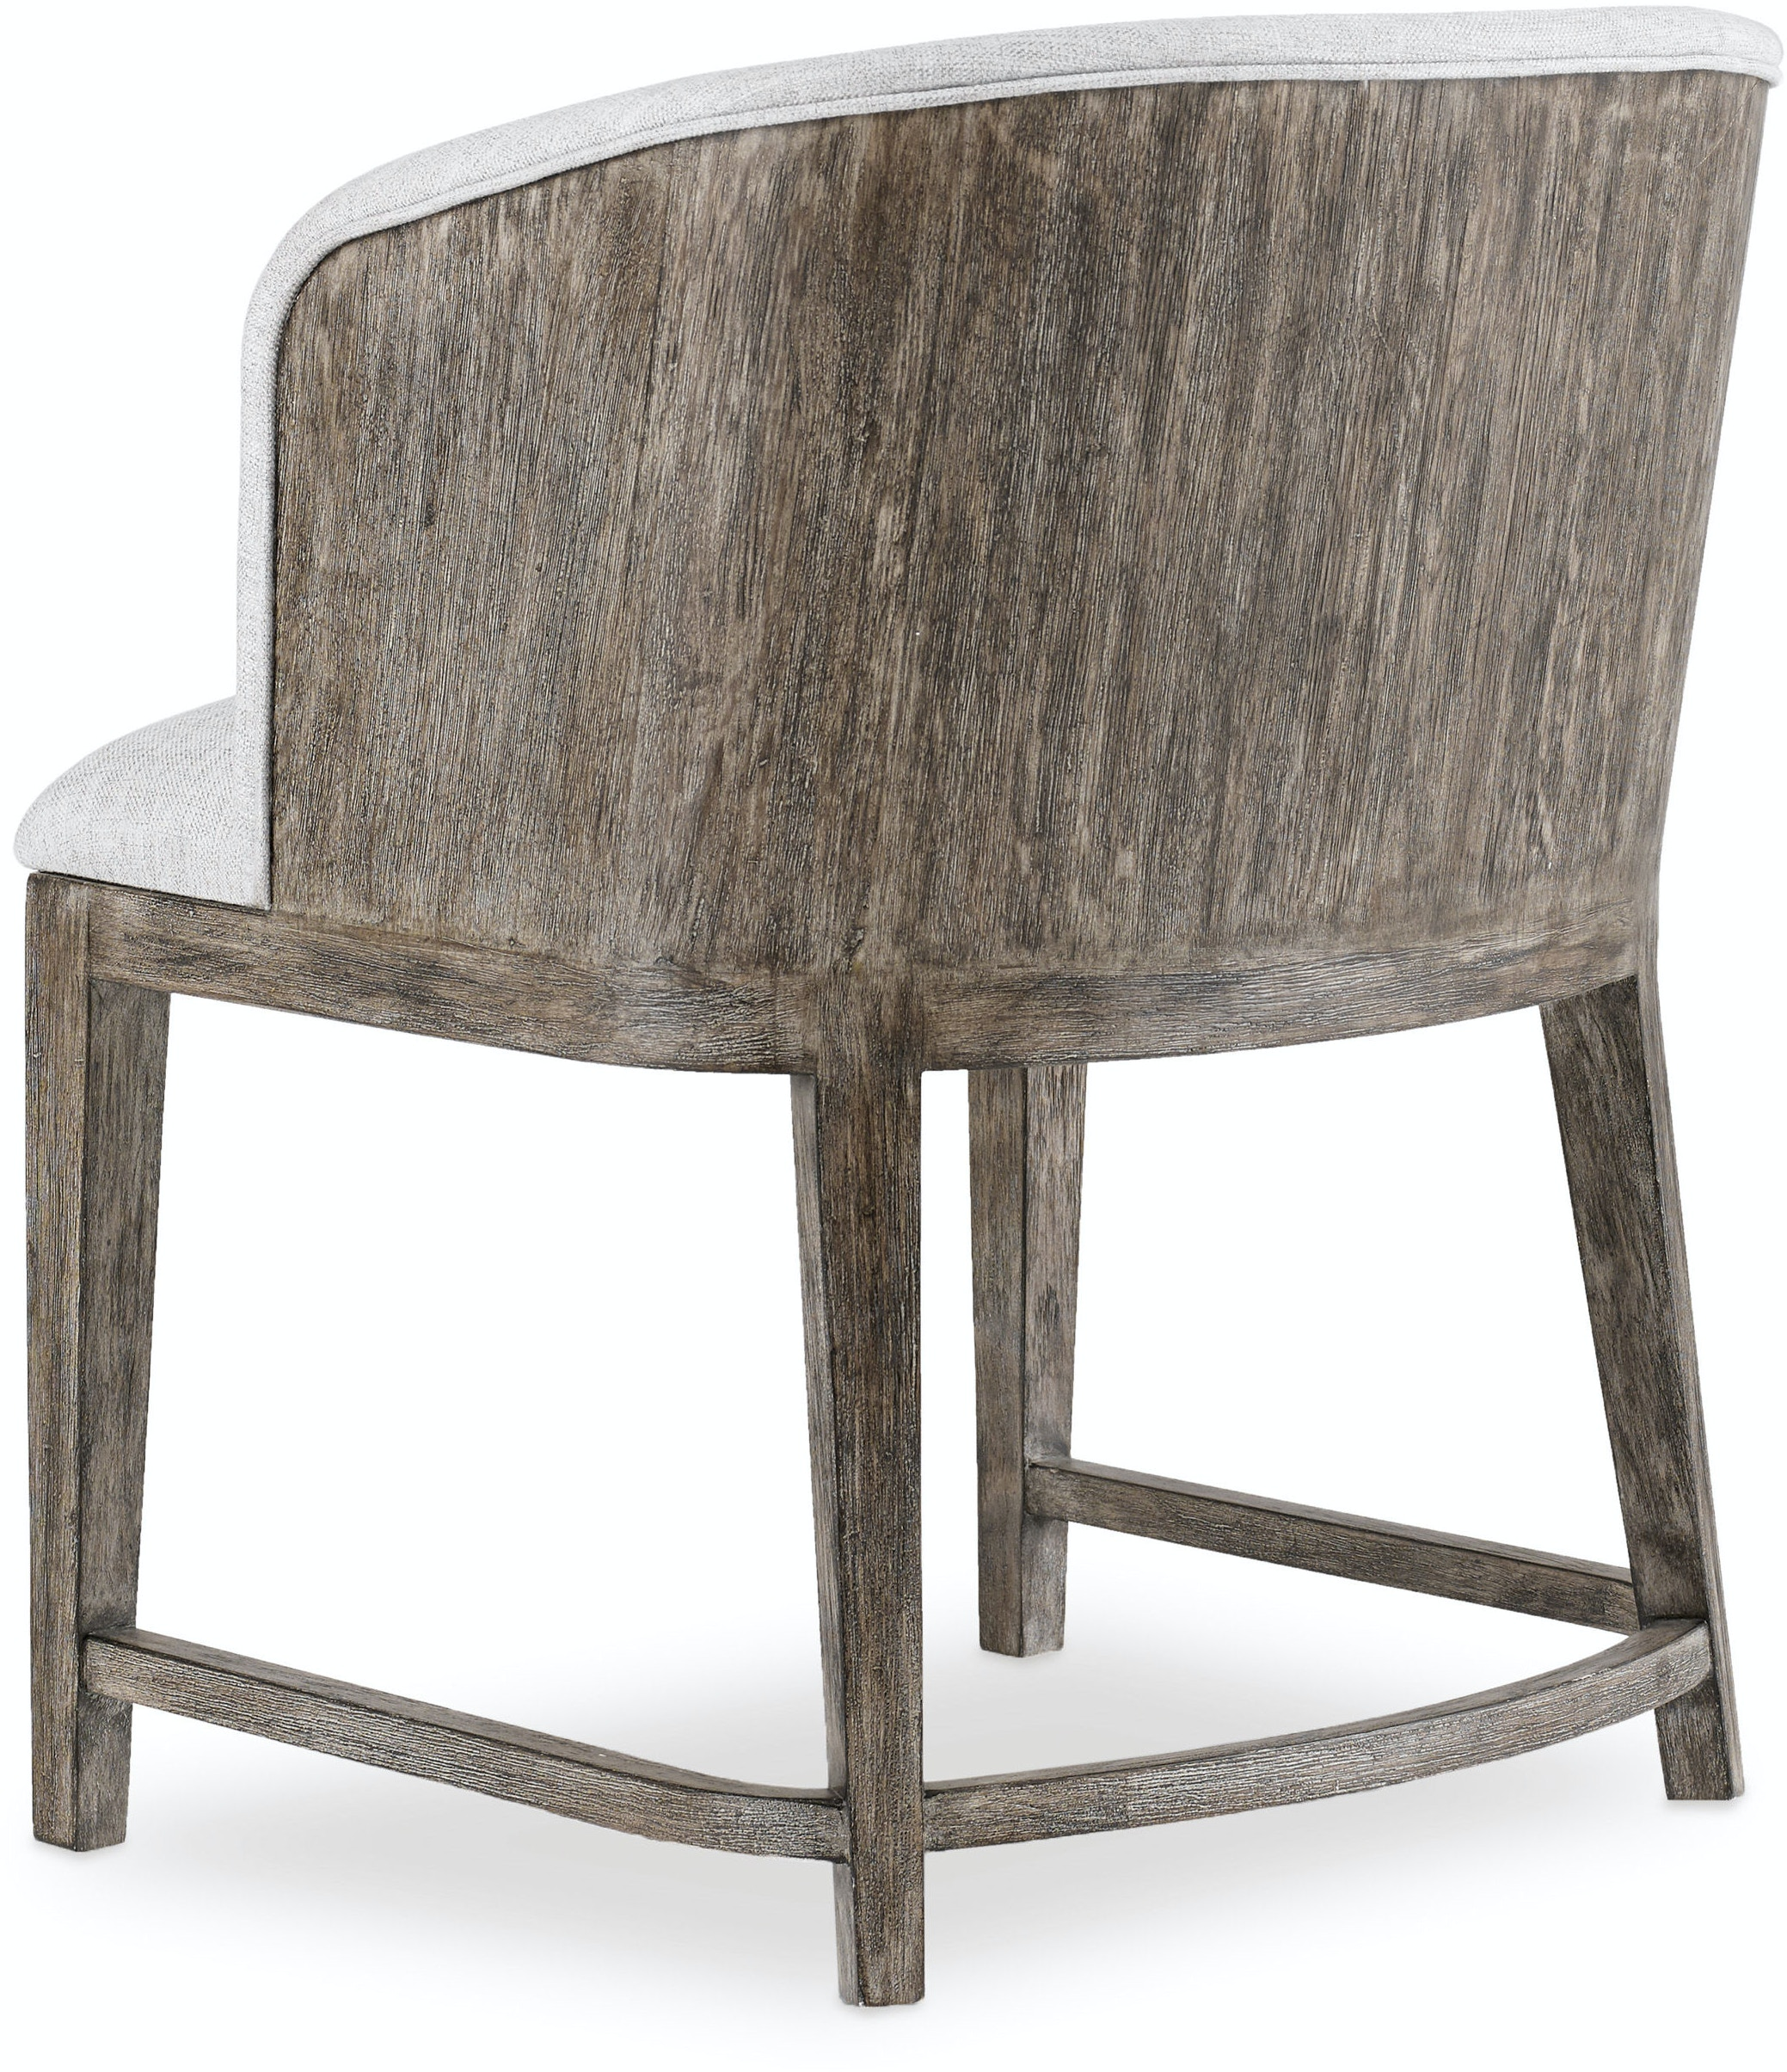 Hooker Furniture Dining Room Curata Upholstered Chair w  : 1600 75800a mwd silo back from www.flemingtondepartmentstore.com size 1024 x 768 jpeg 61kB